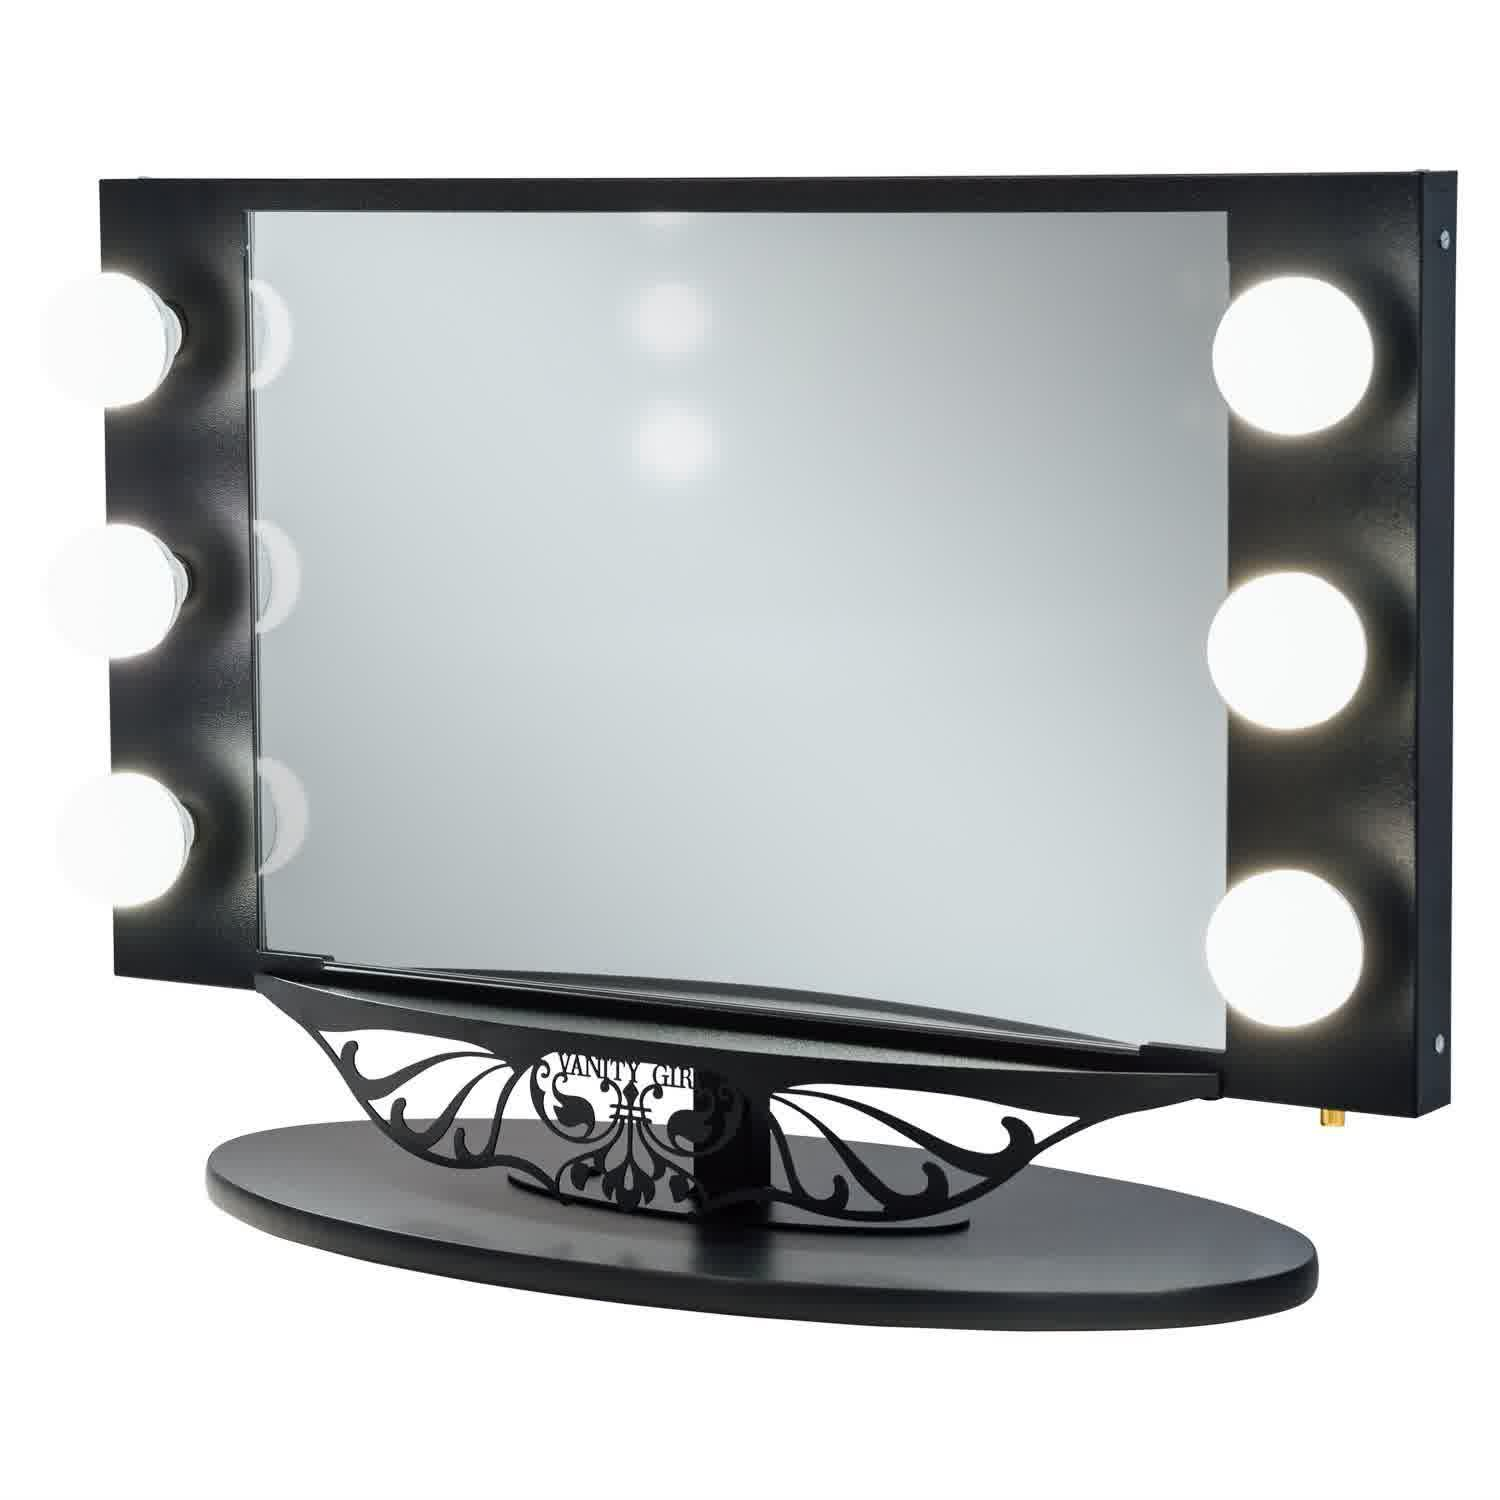 starlet lighted vanity mirror in simple frame design. Black Bedroom Furniture Sets. Home Design Ideas